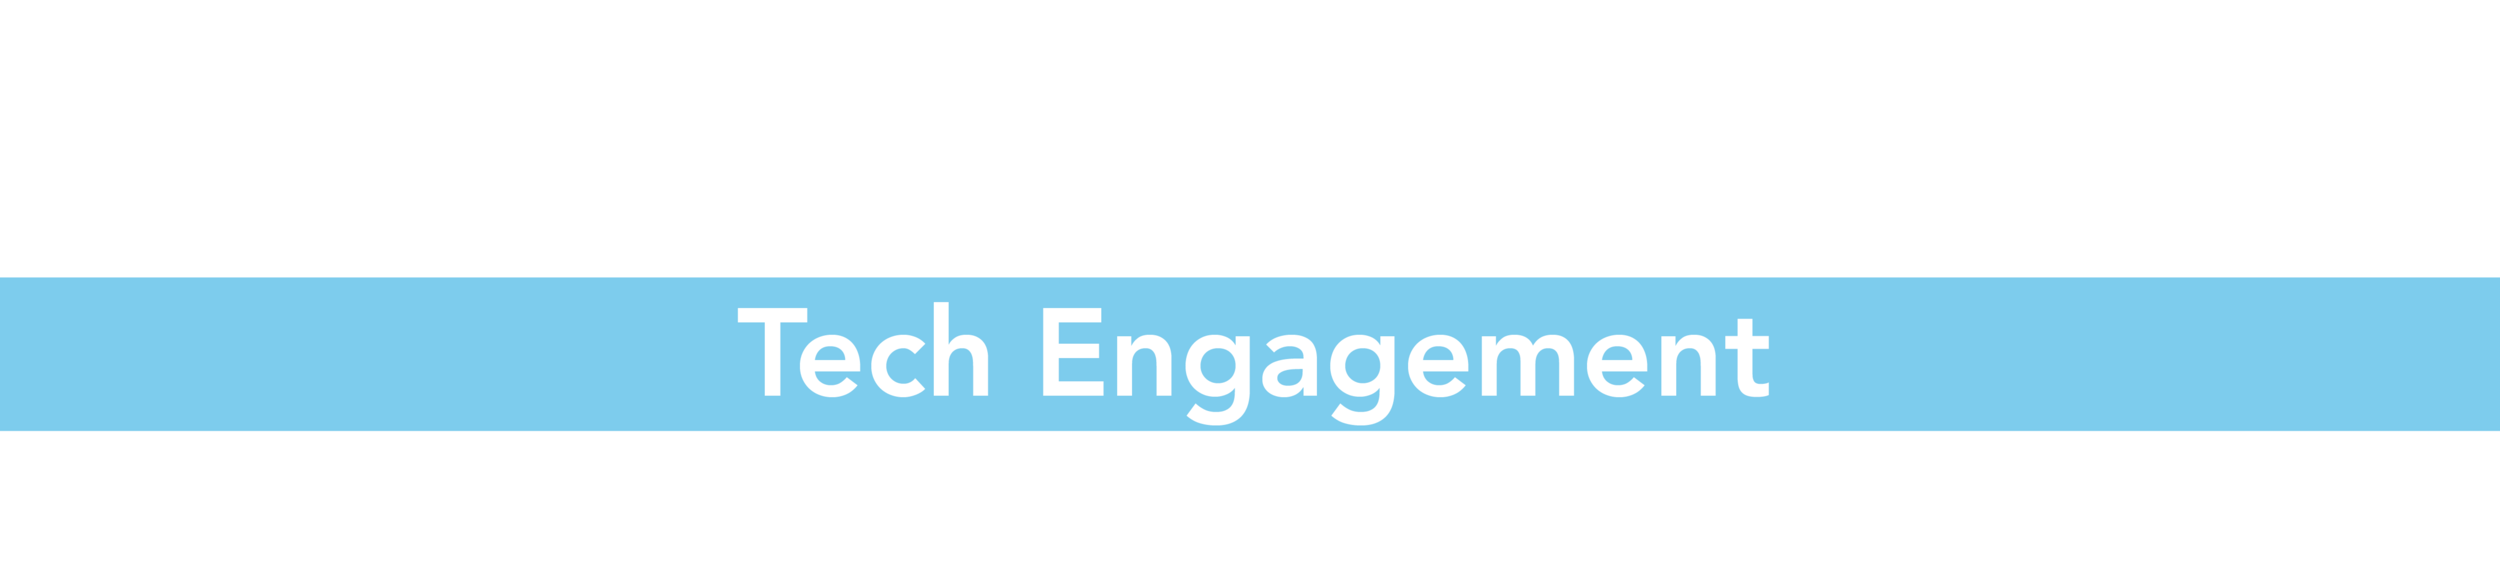 Tech Engagement PNG-02.png